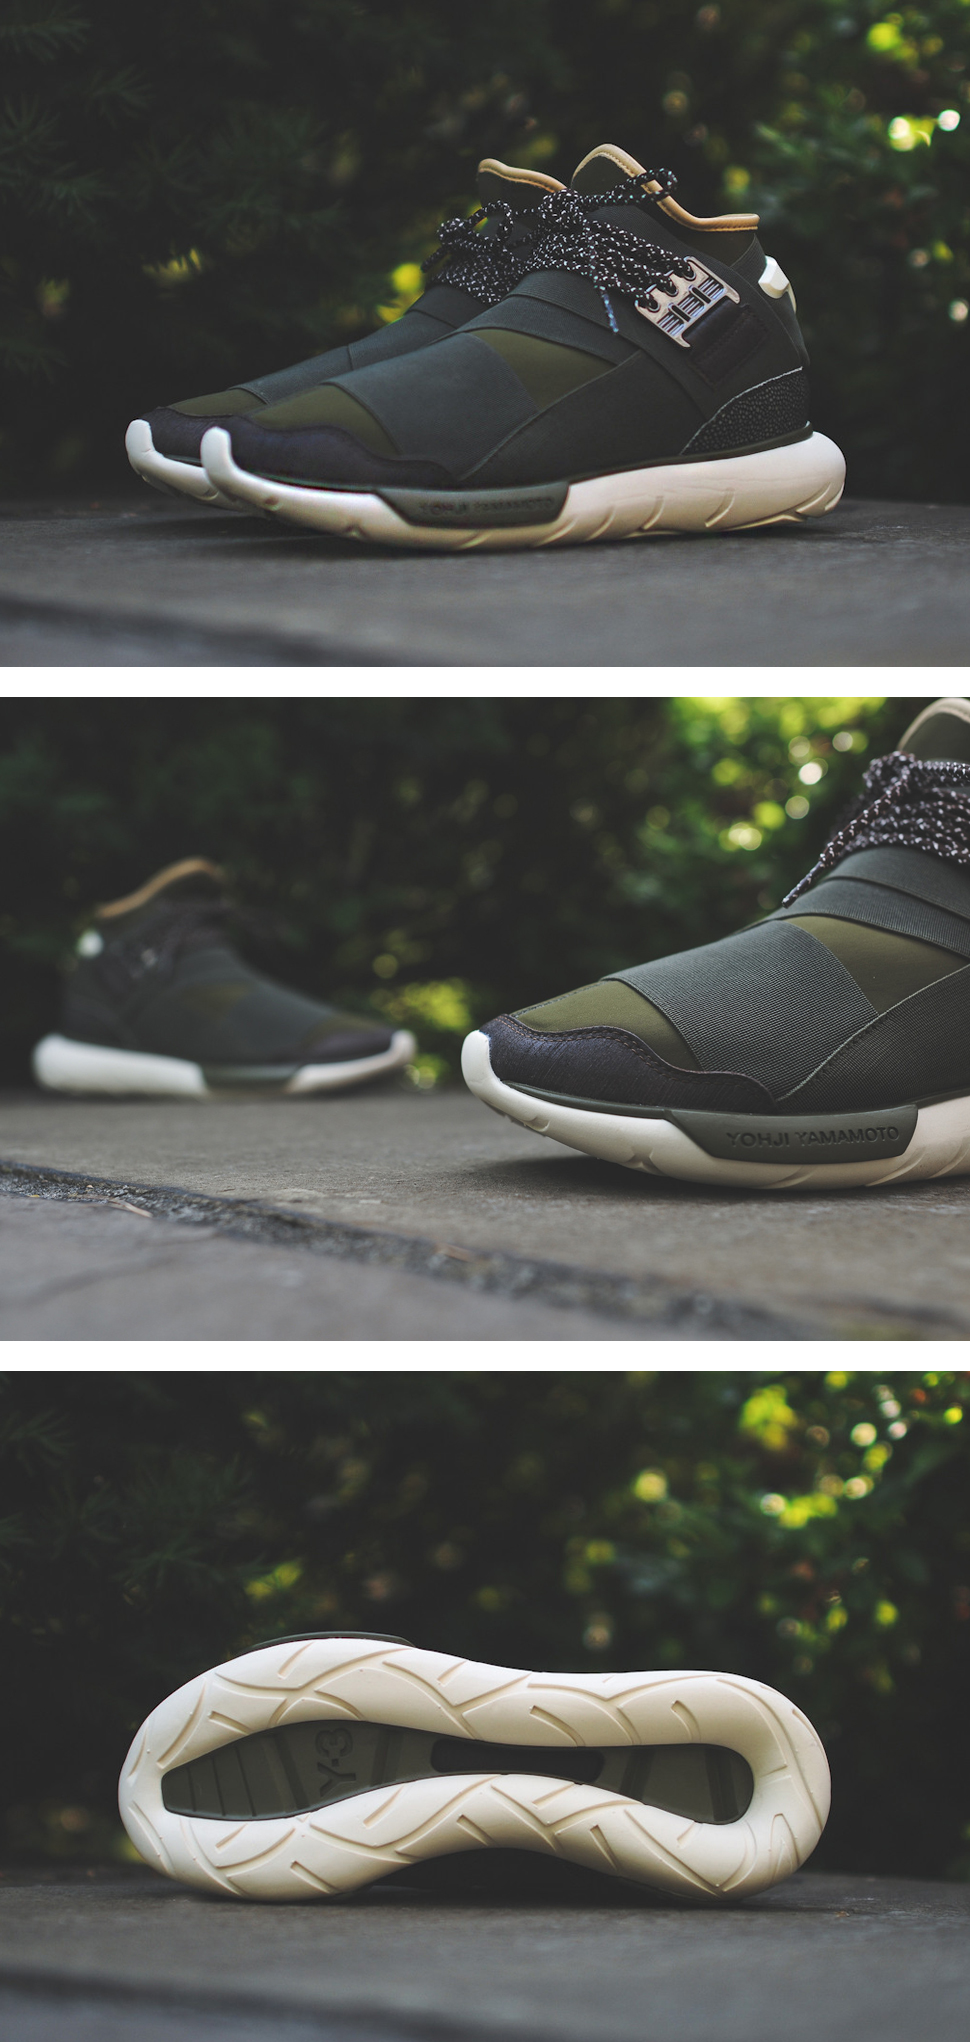 "quality design be197 a7412 Y-3   Qasa High ""Olive Drab"" Shoe Photography, Lazy, Sneaker"